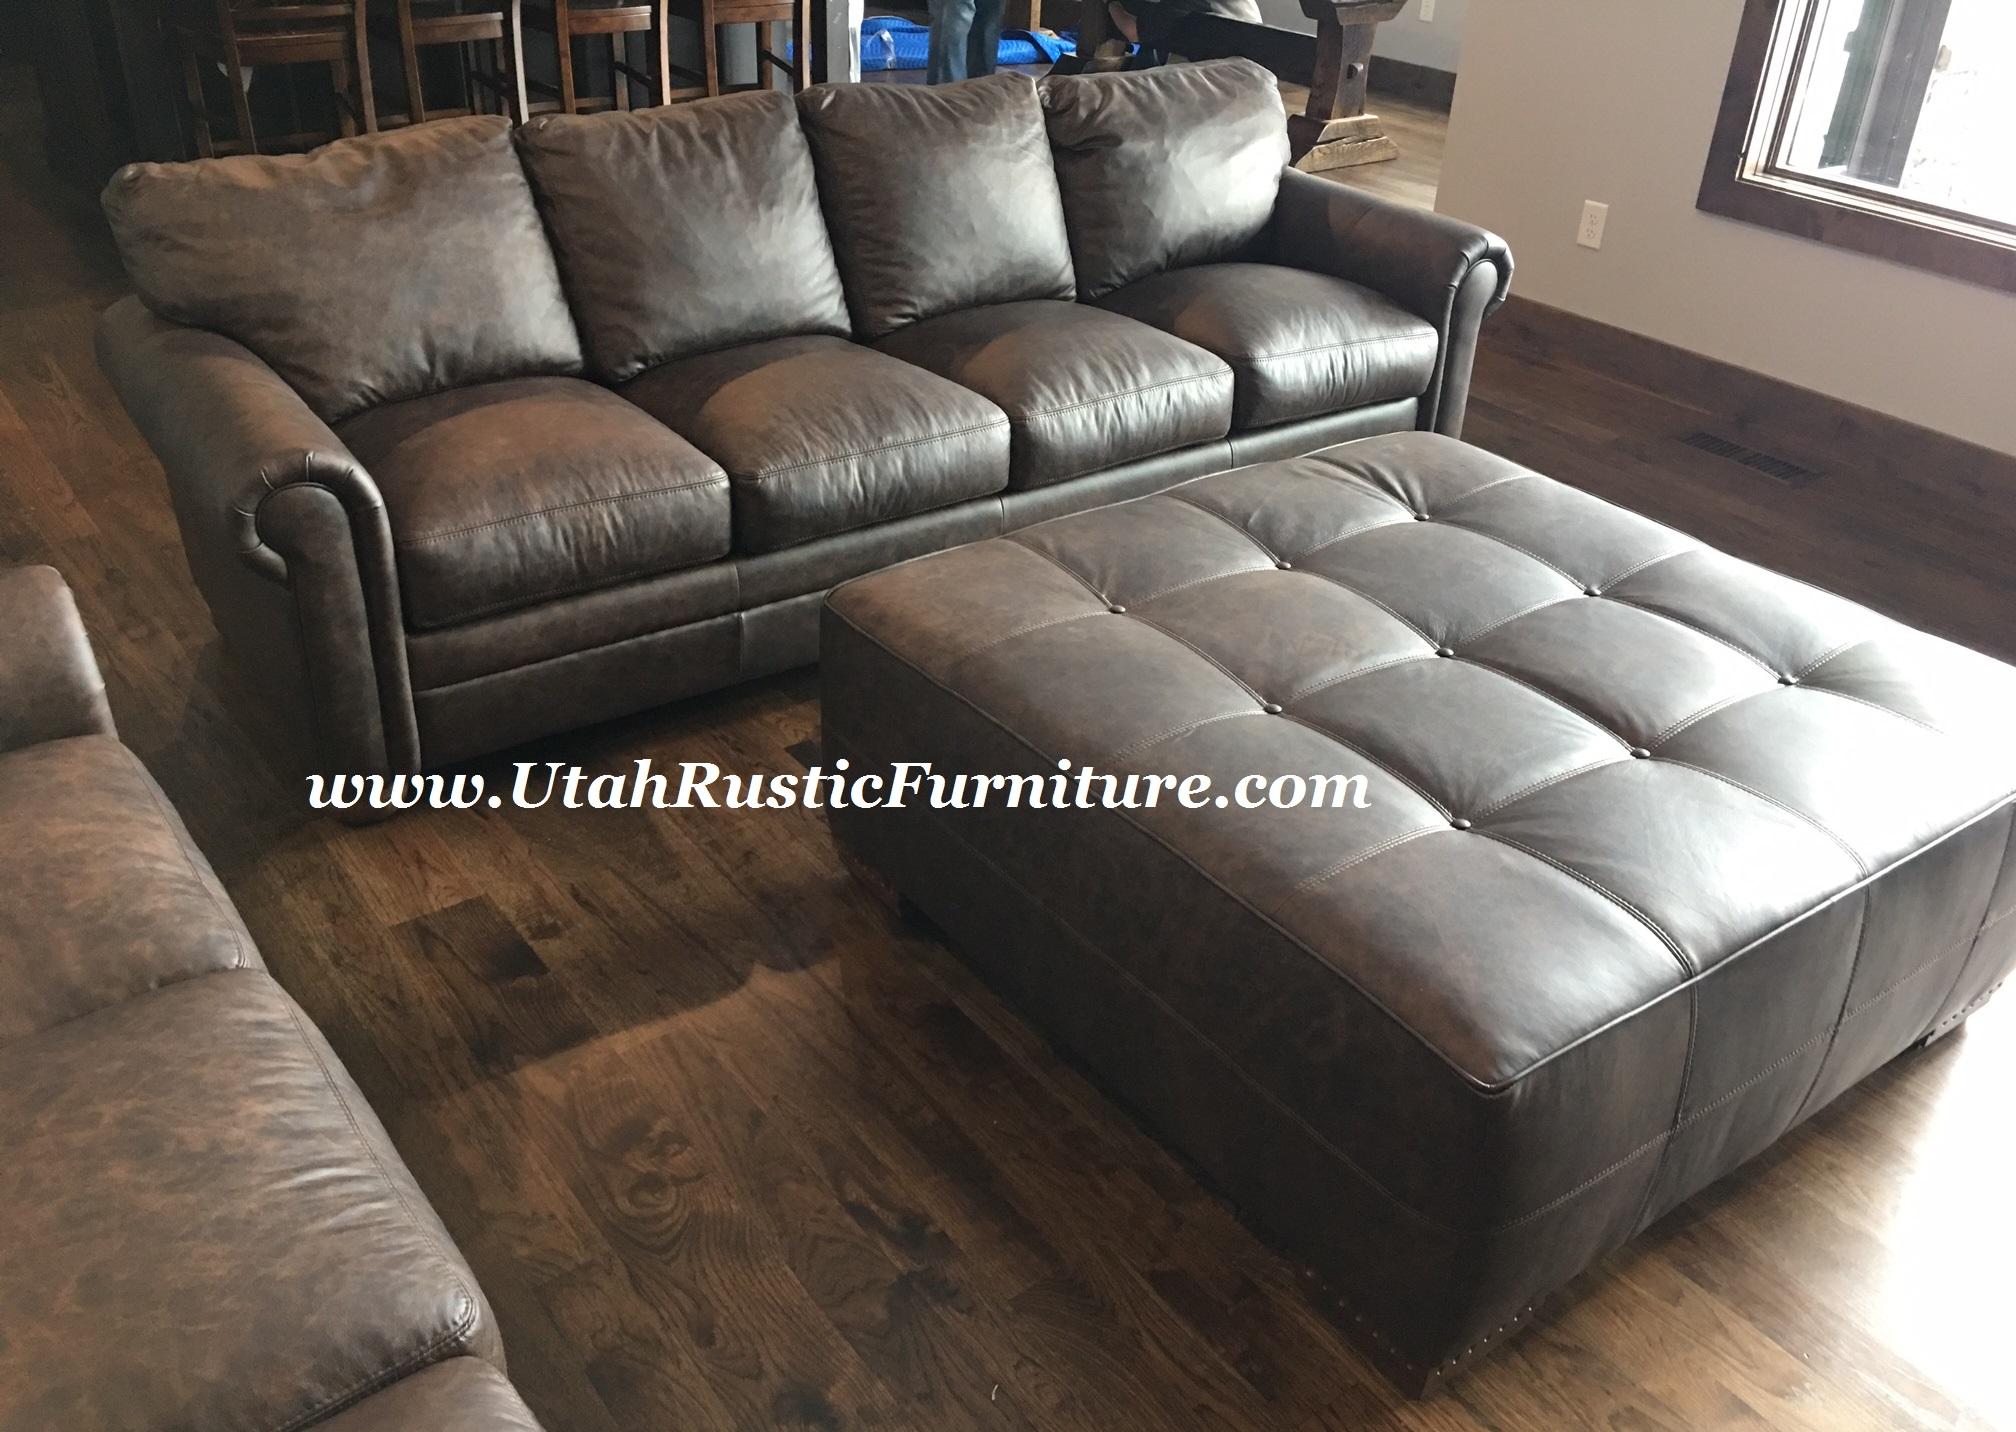 Omnia Laredo  Custom Two Tone 100% Genuine Leather Sofa W/Alligator Stamp  Accents $3549. Call Or Email For Pricing And Dims On Other Pieces Shown.